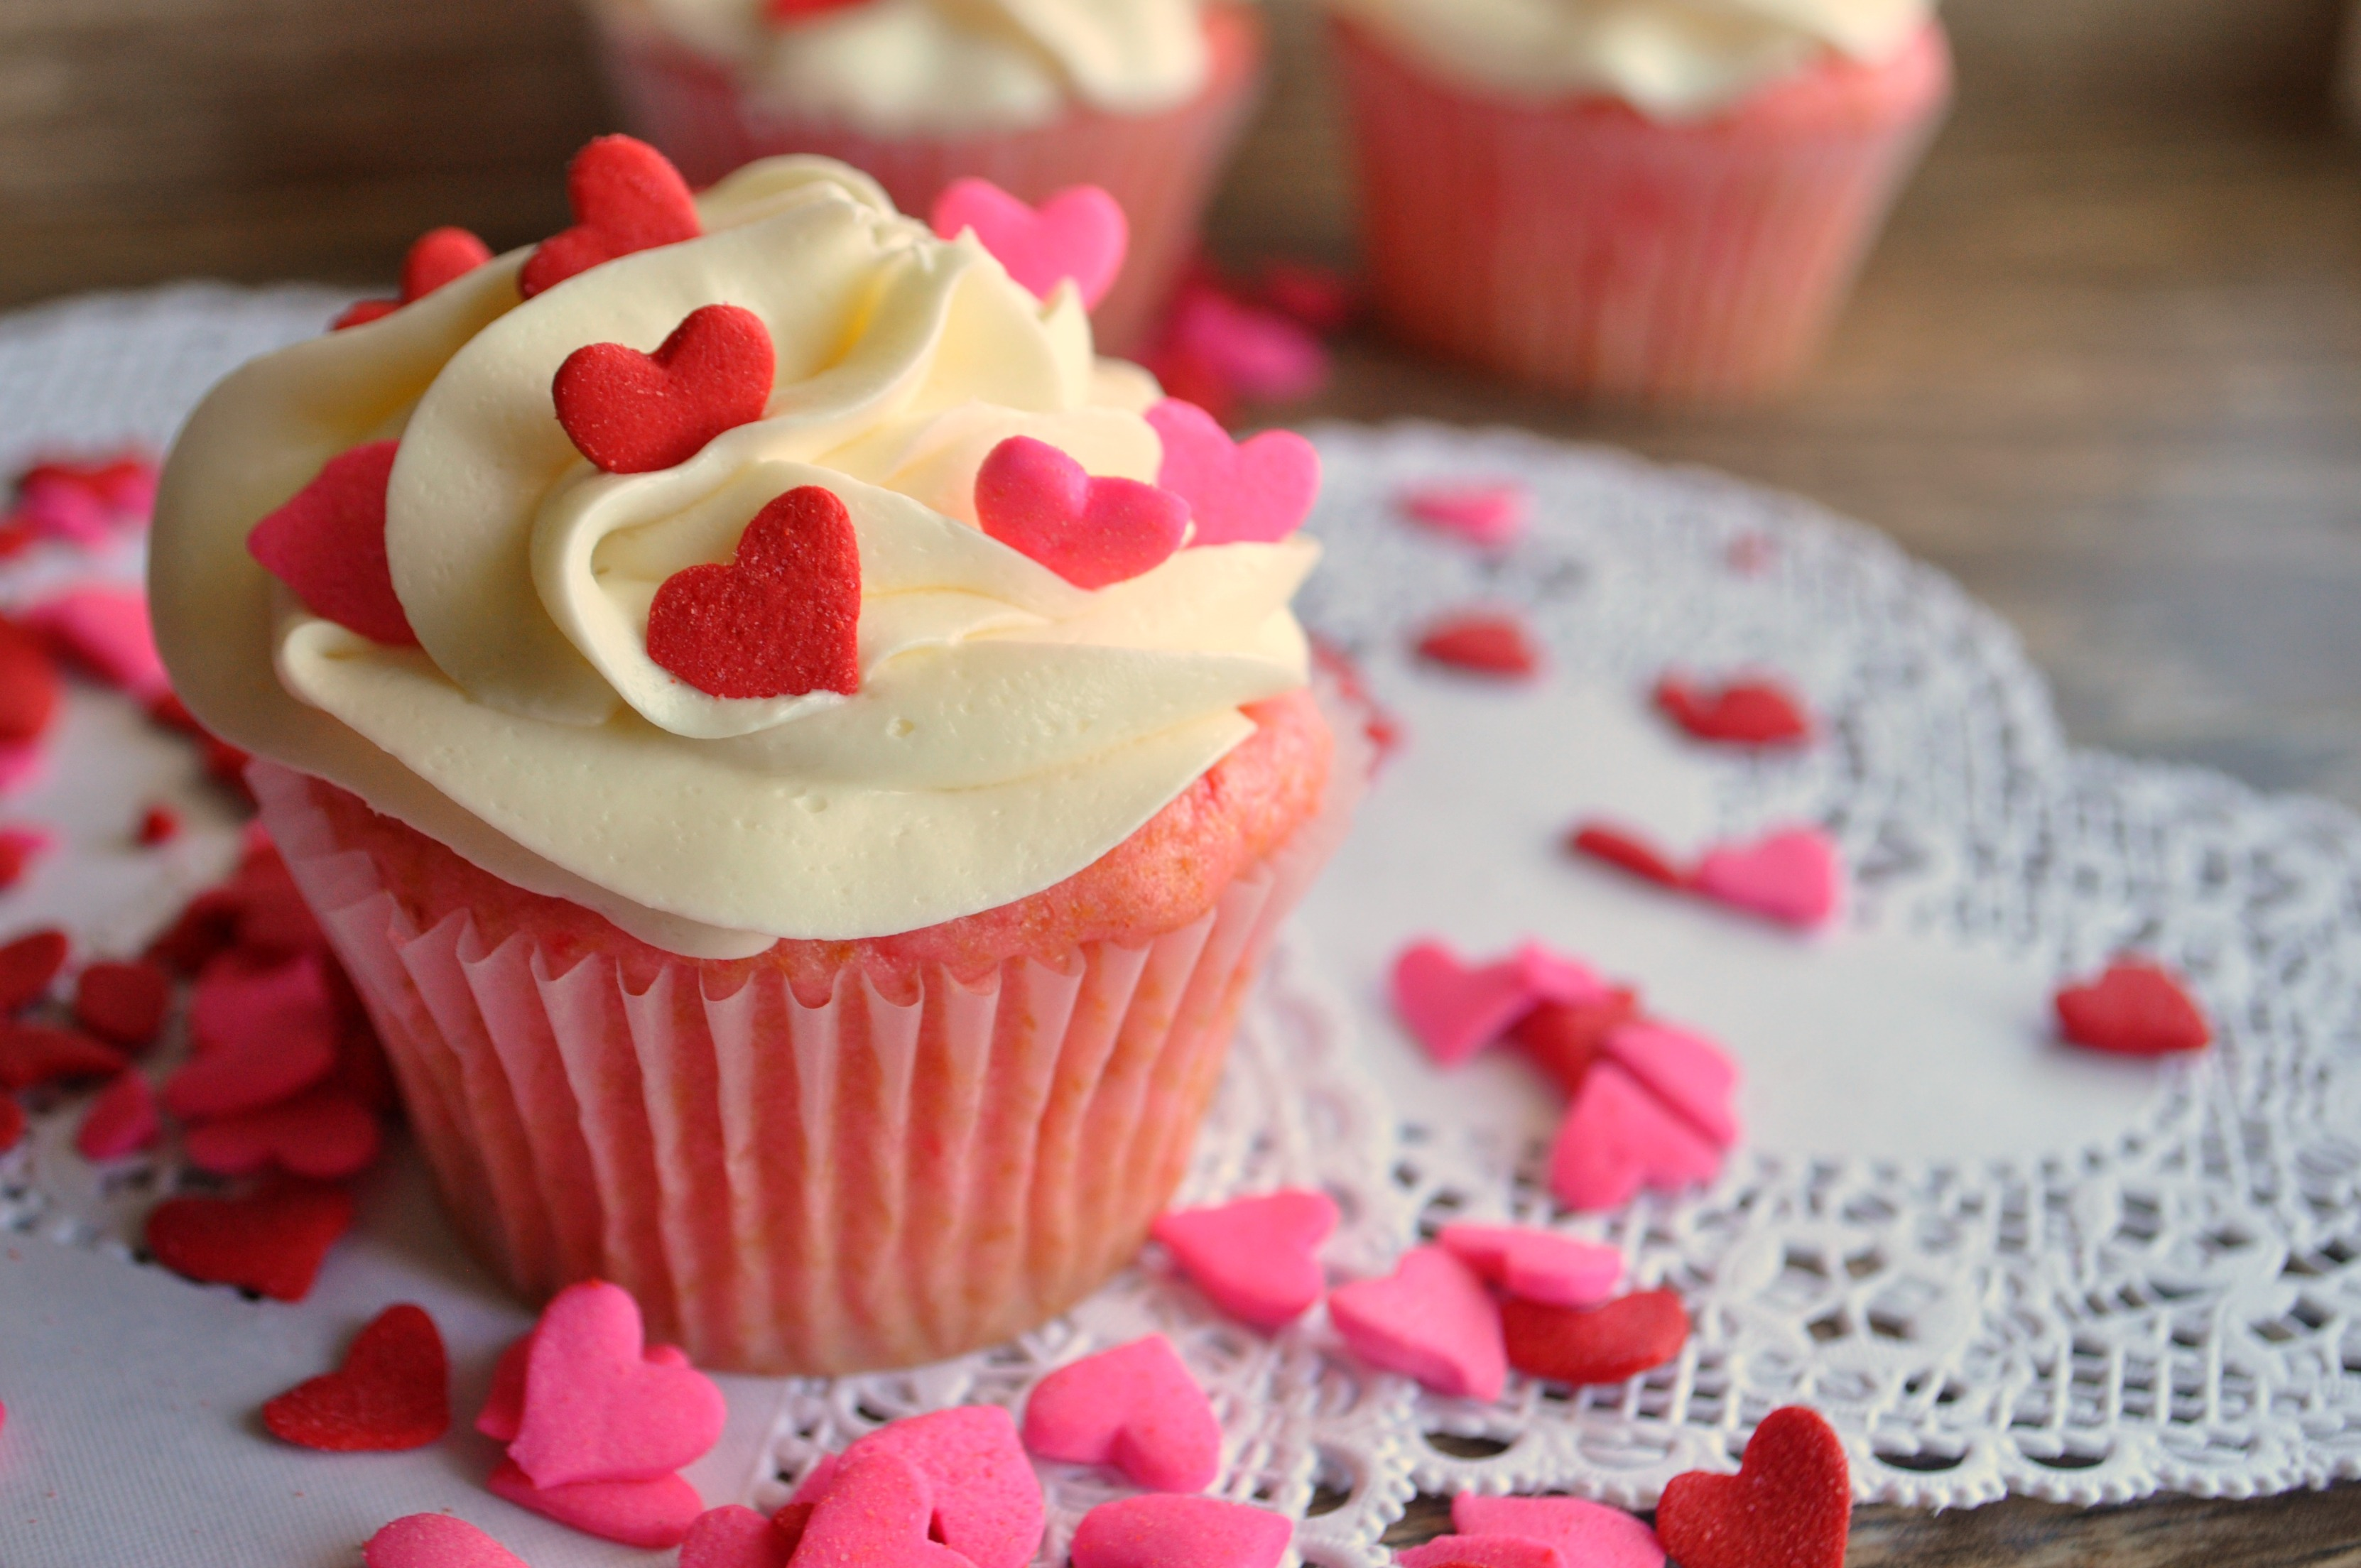 7 Cute Valentine Cupcakes Heart Photo Valentine Cupcakes In A Cup